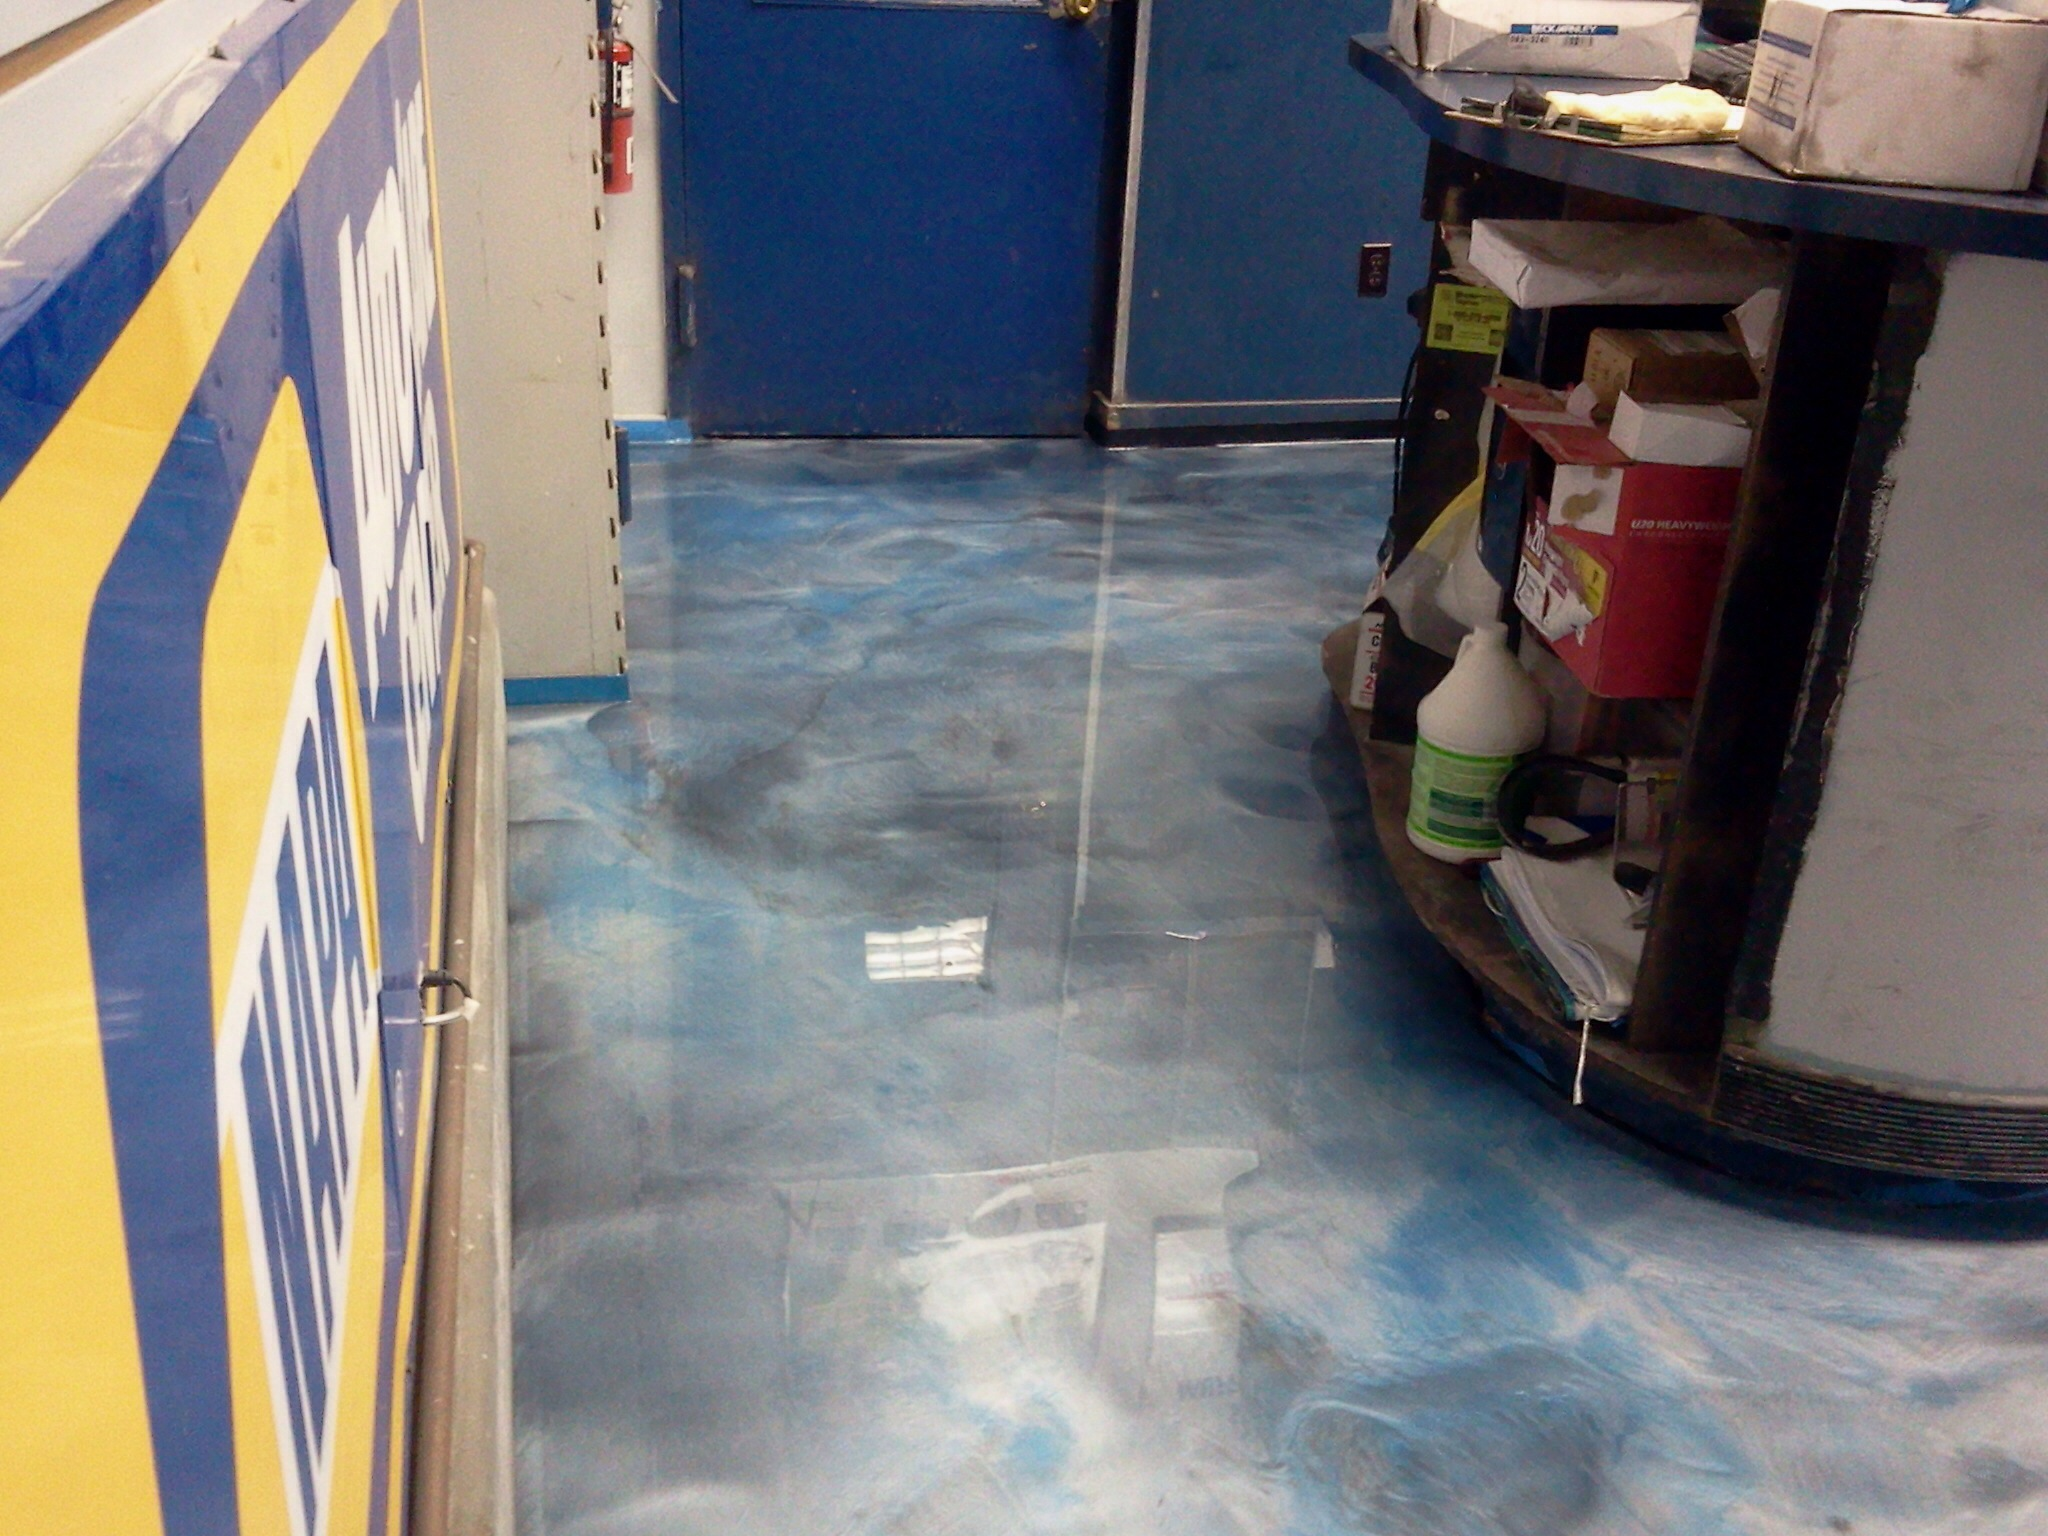 Stunning Metallic Epoxy Floors system